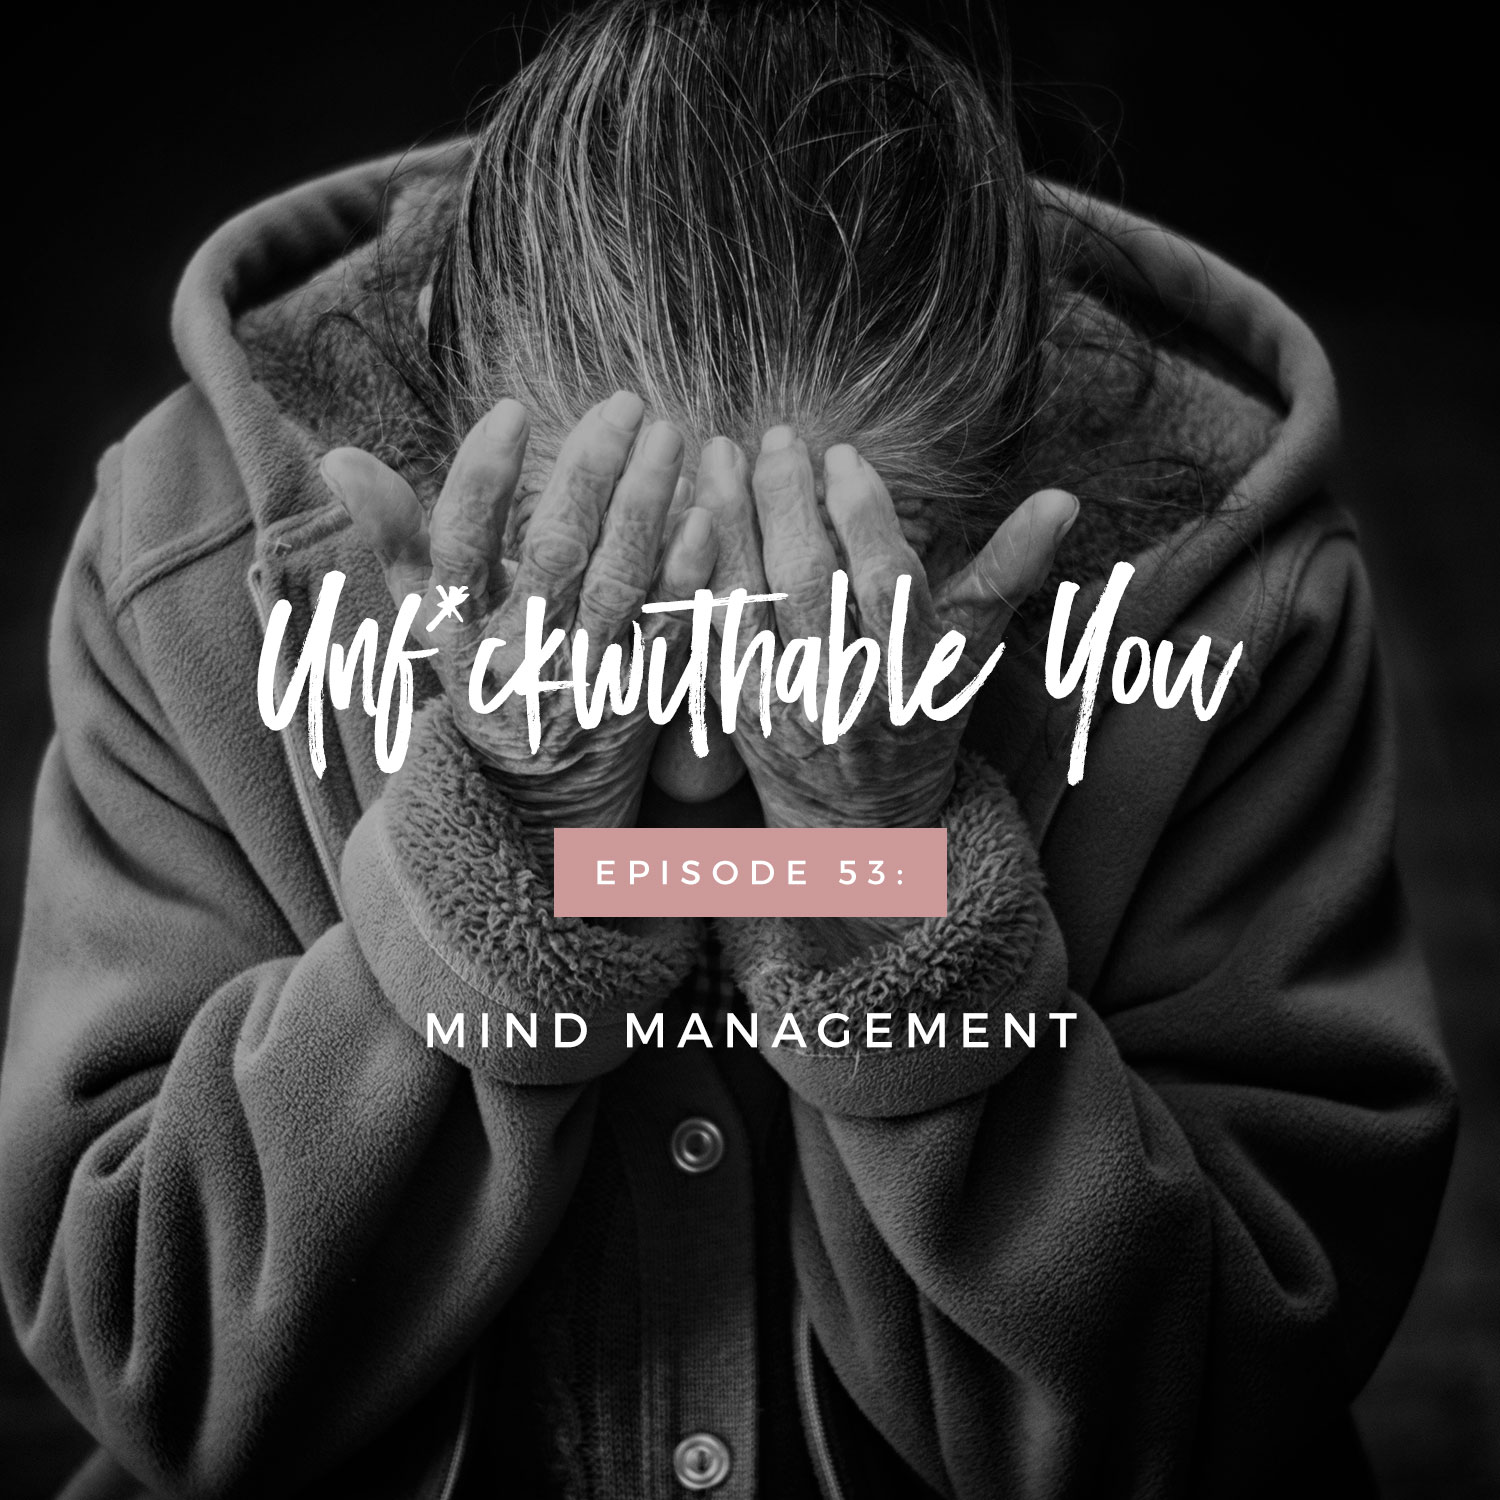 Unf*ckwithable You Episode 53: Mind Management